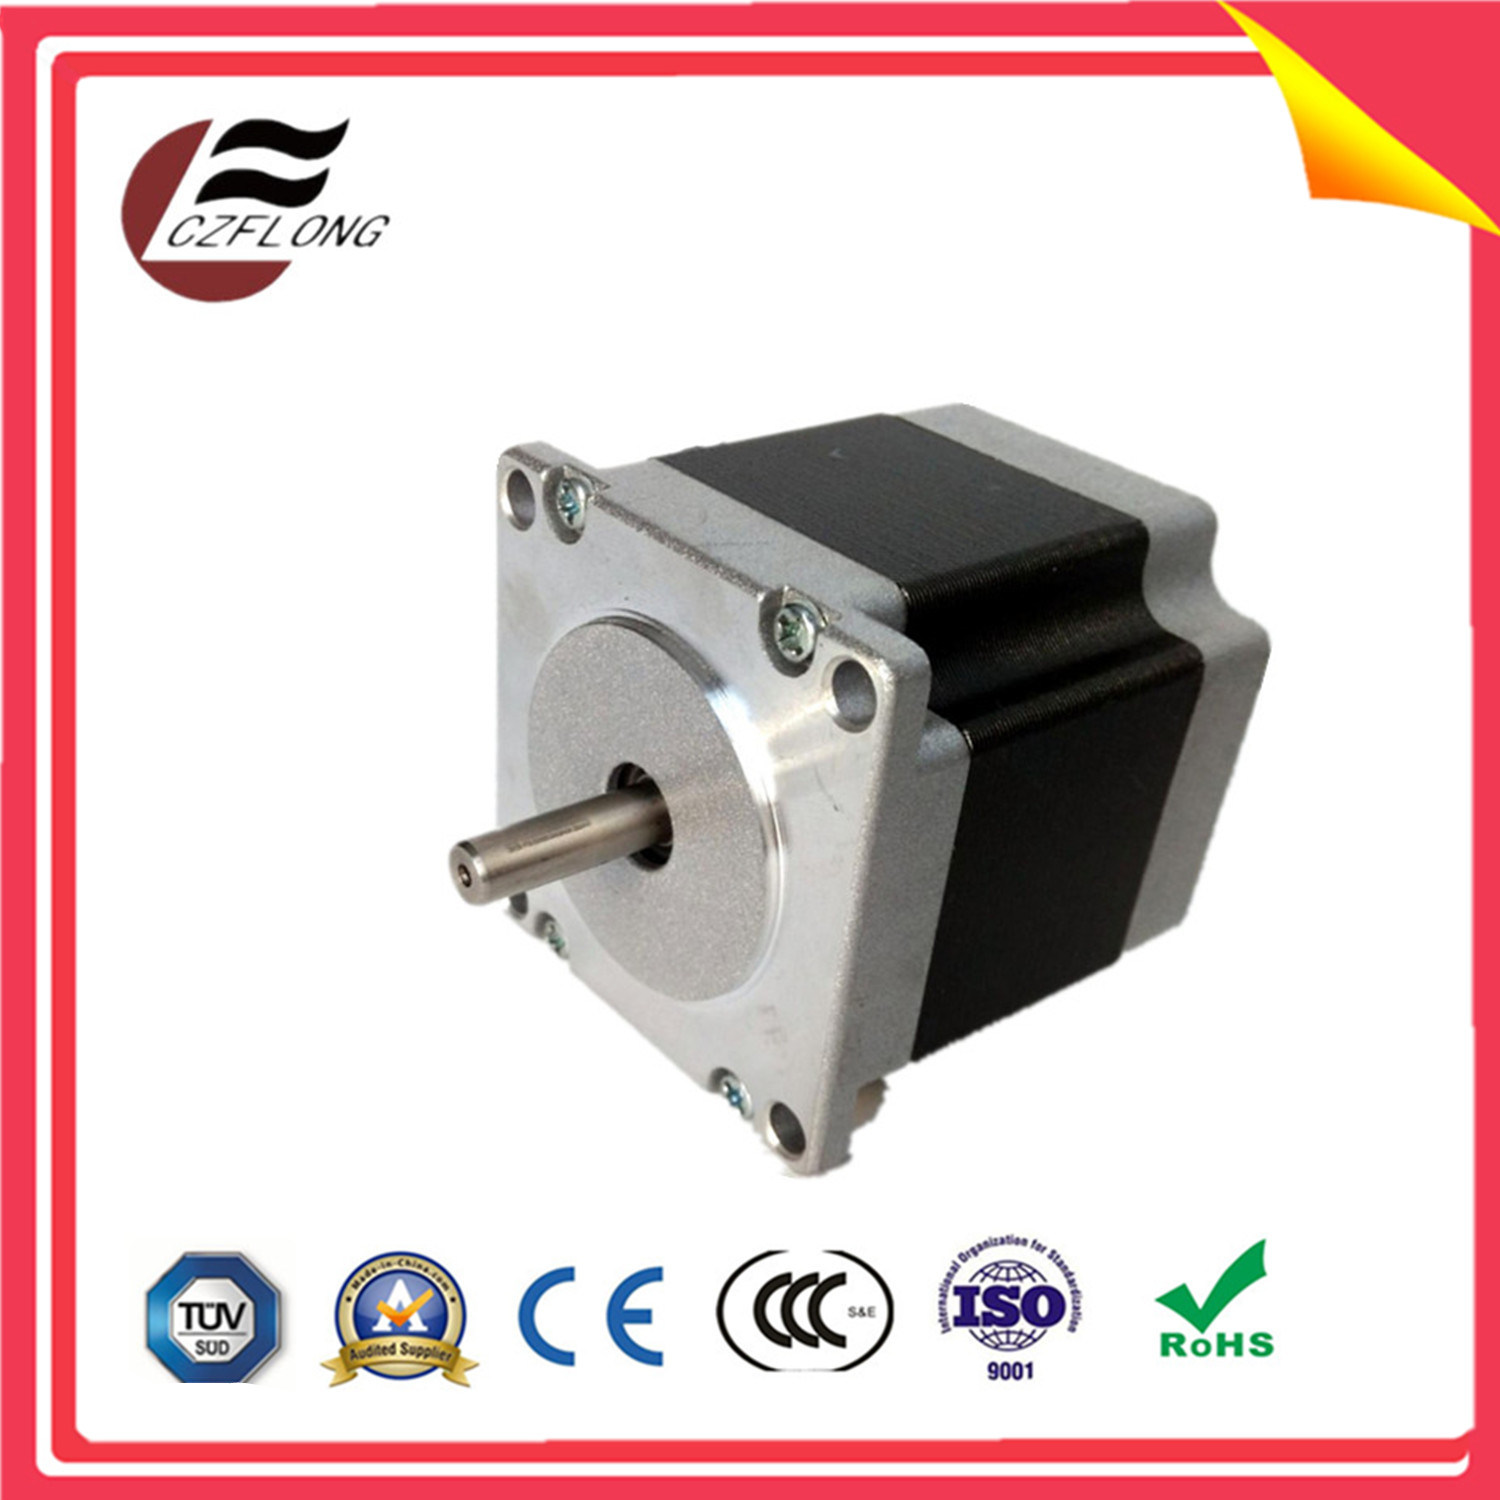 china 57 57mm stepper brushless dc motor for cnc auto parts sewing rh chinasteppermotor en made in china com Firearm Schematic CNC Firearm Schematic CNC